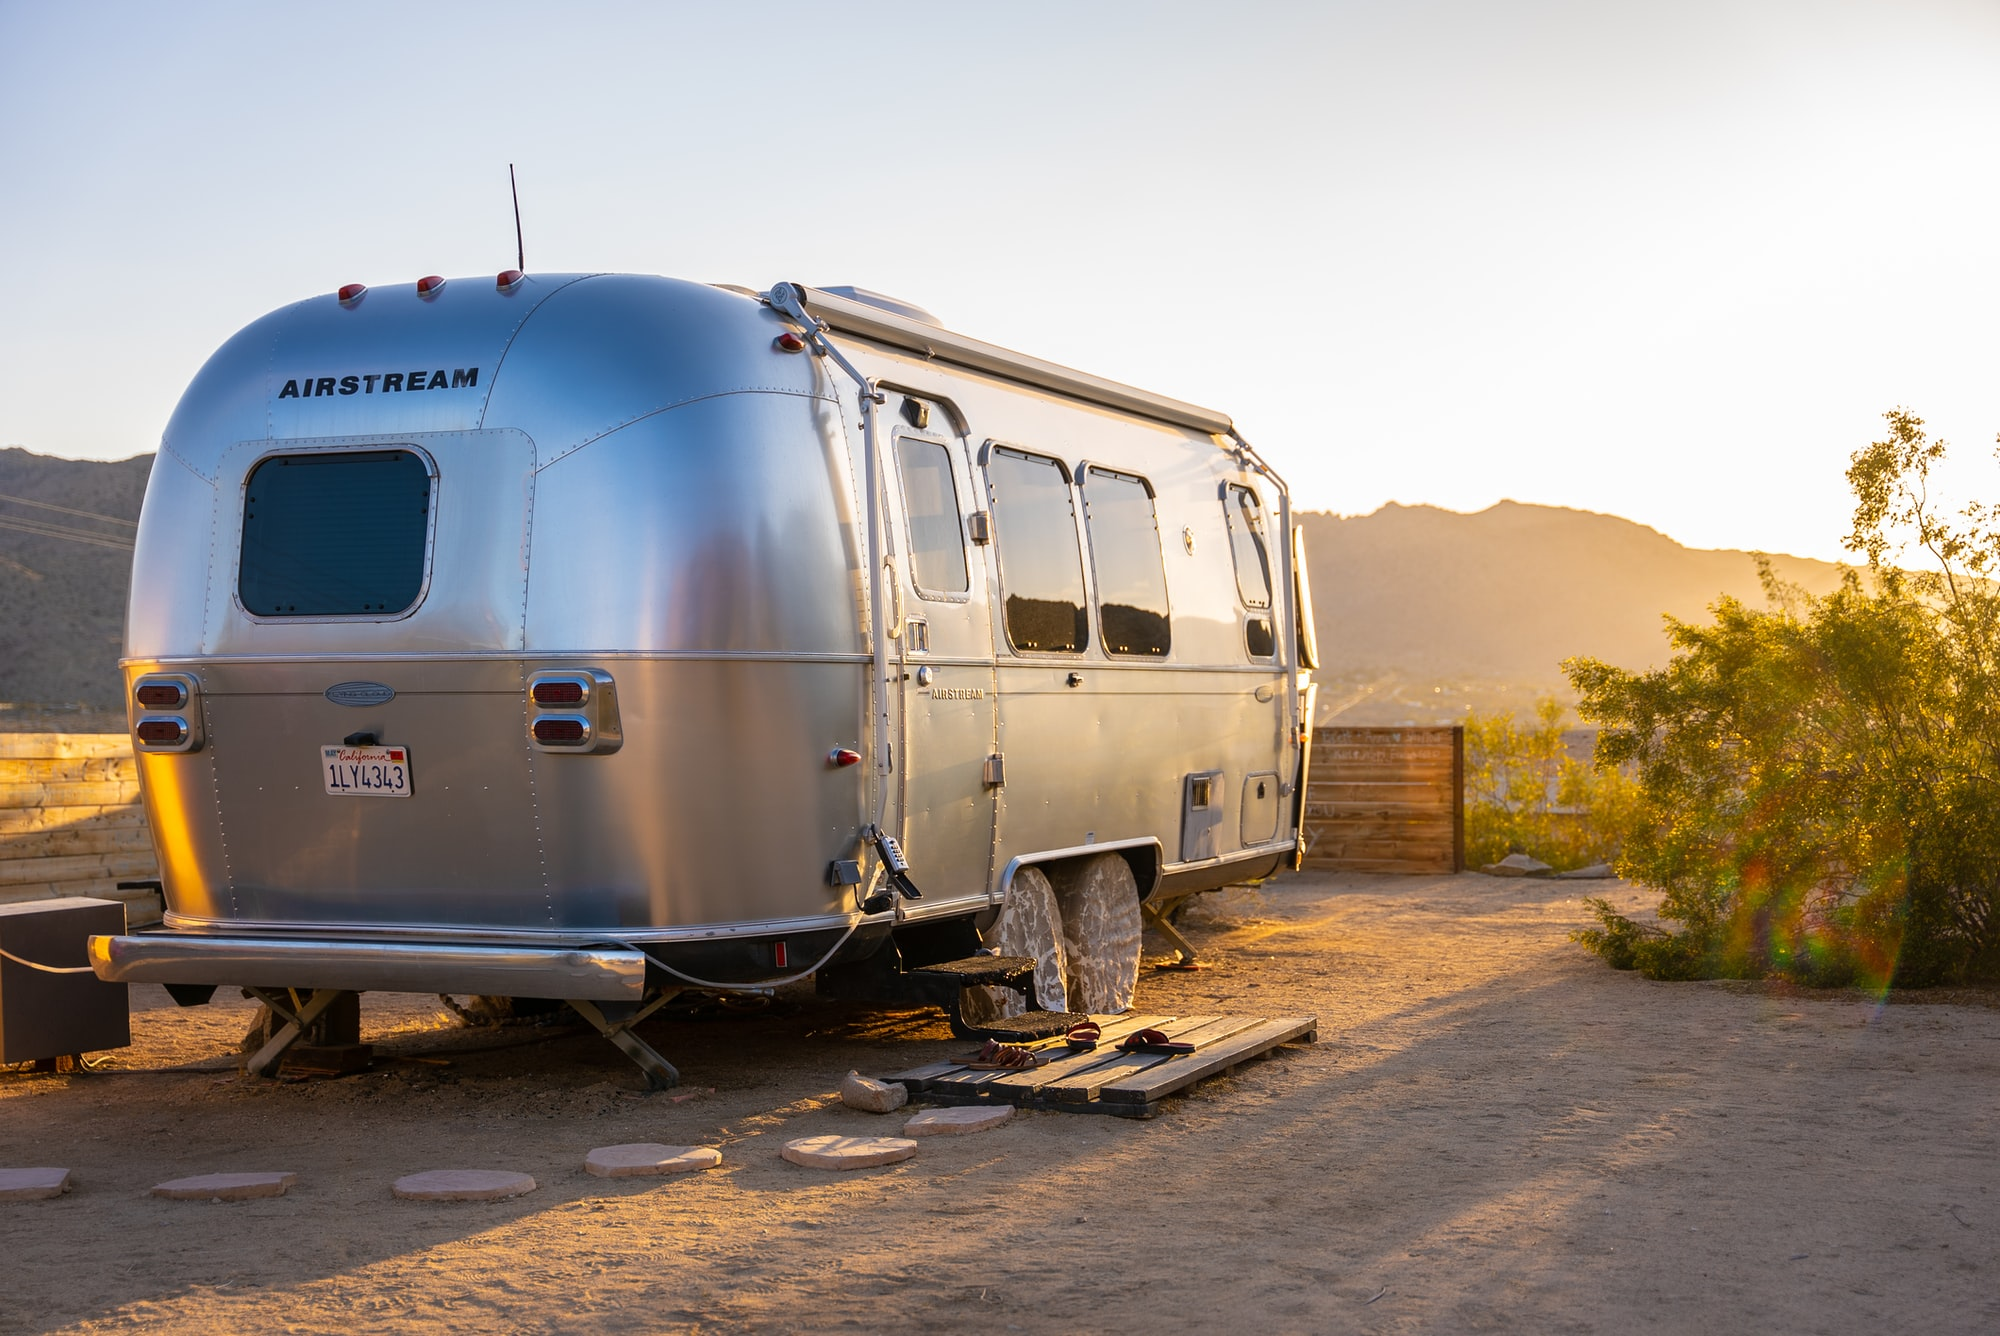 7 Things to Consider Before Renting an Airstream (in 2021)